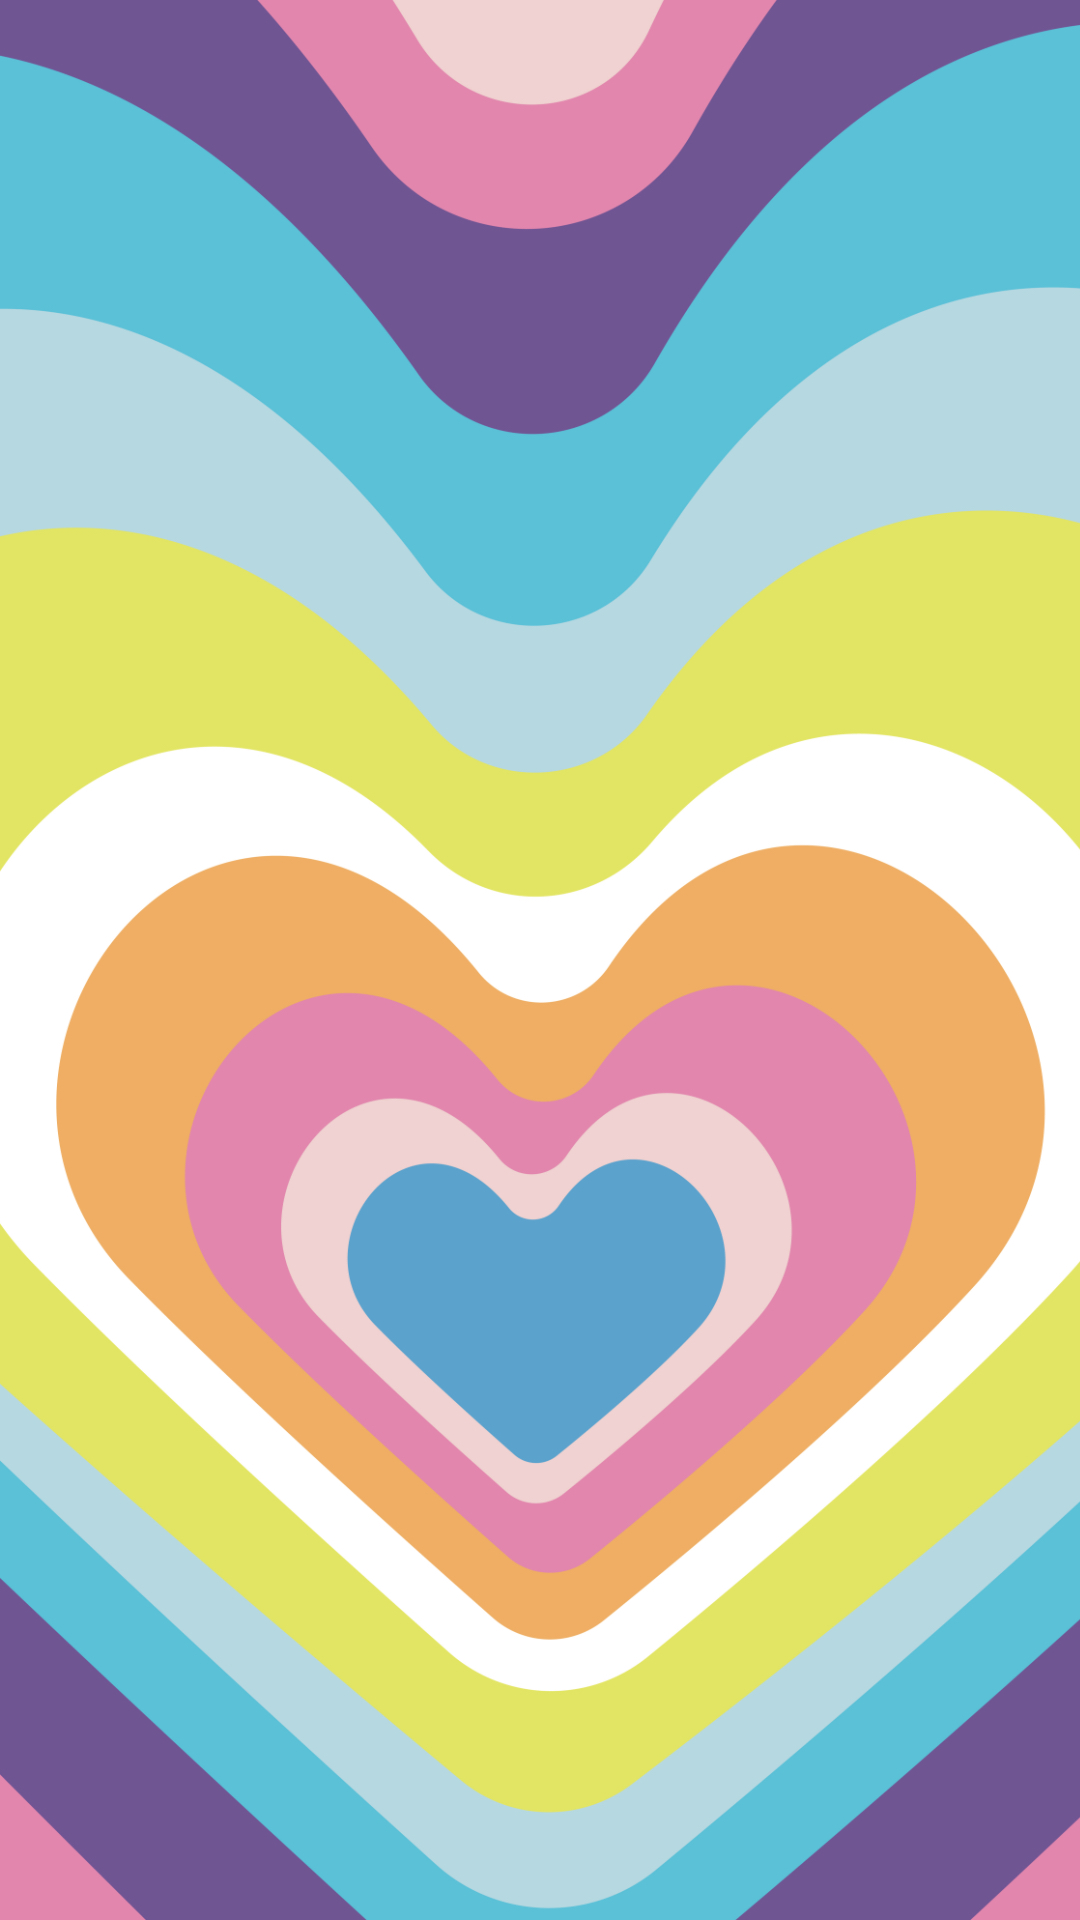 Summer phone wallpaper with hearts in a ringed pattern